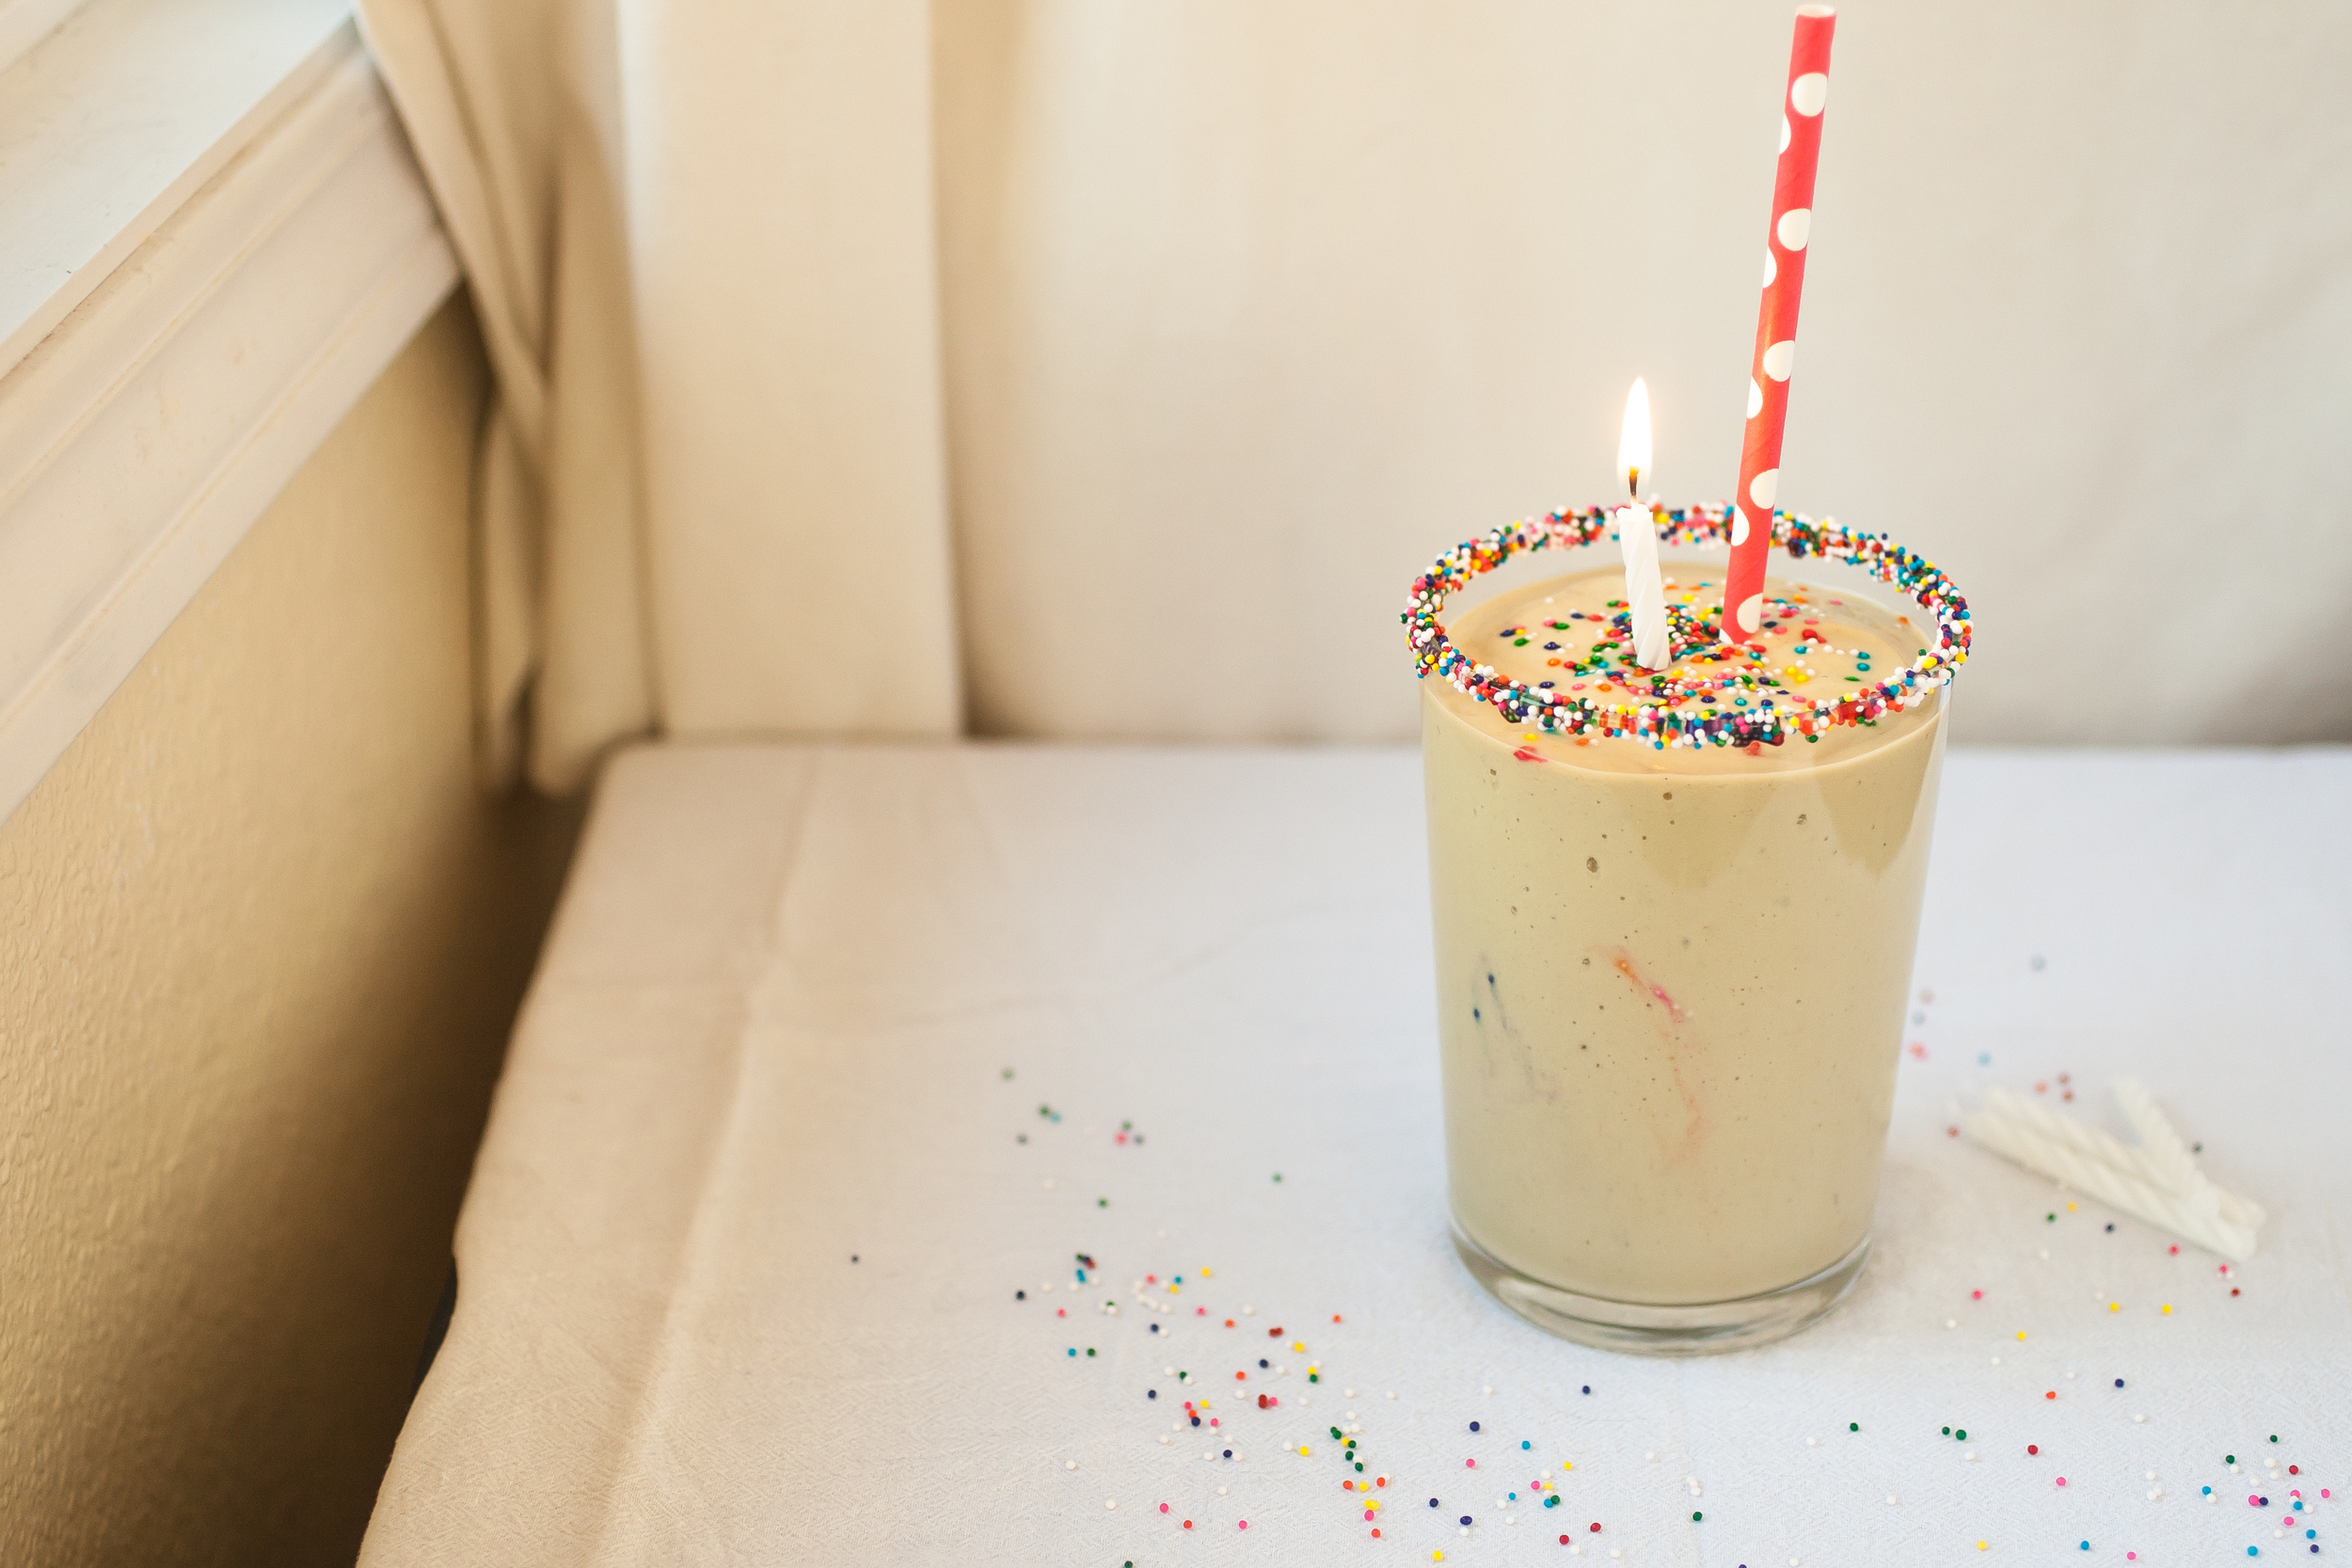 Produce On Parade - Cake Batter Smoothie - This healthy Birthday Cake Smoothie is a great drink to treat yourself to anytime. Full of good fats and protein packed, skip the dessert and go for this cake-mimicking smoothie instead!